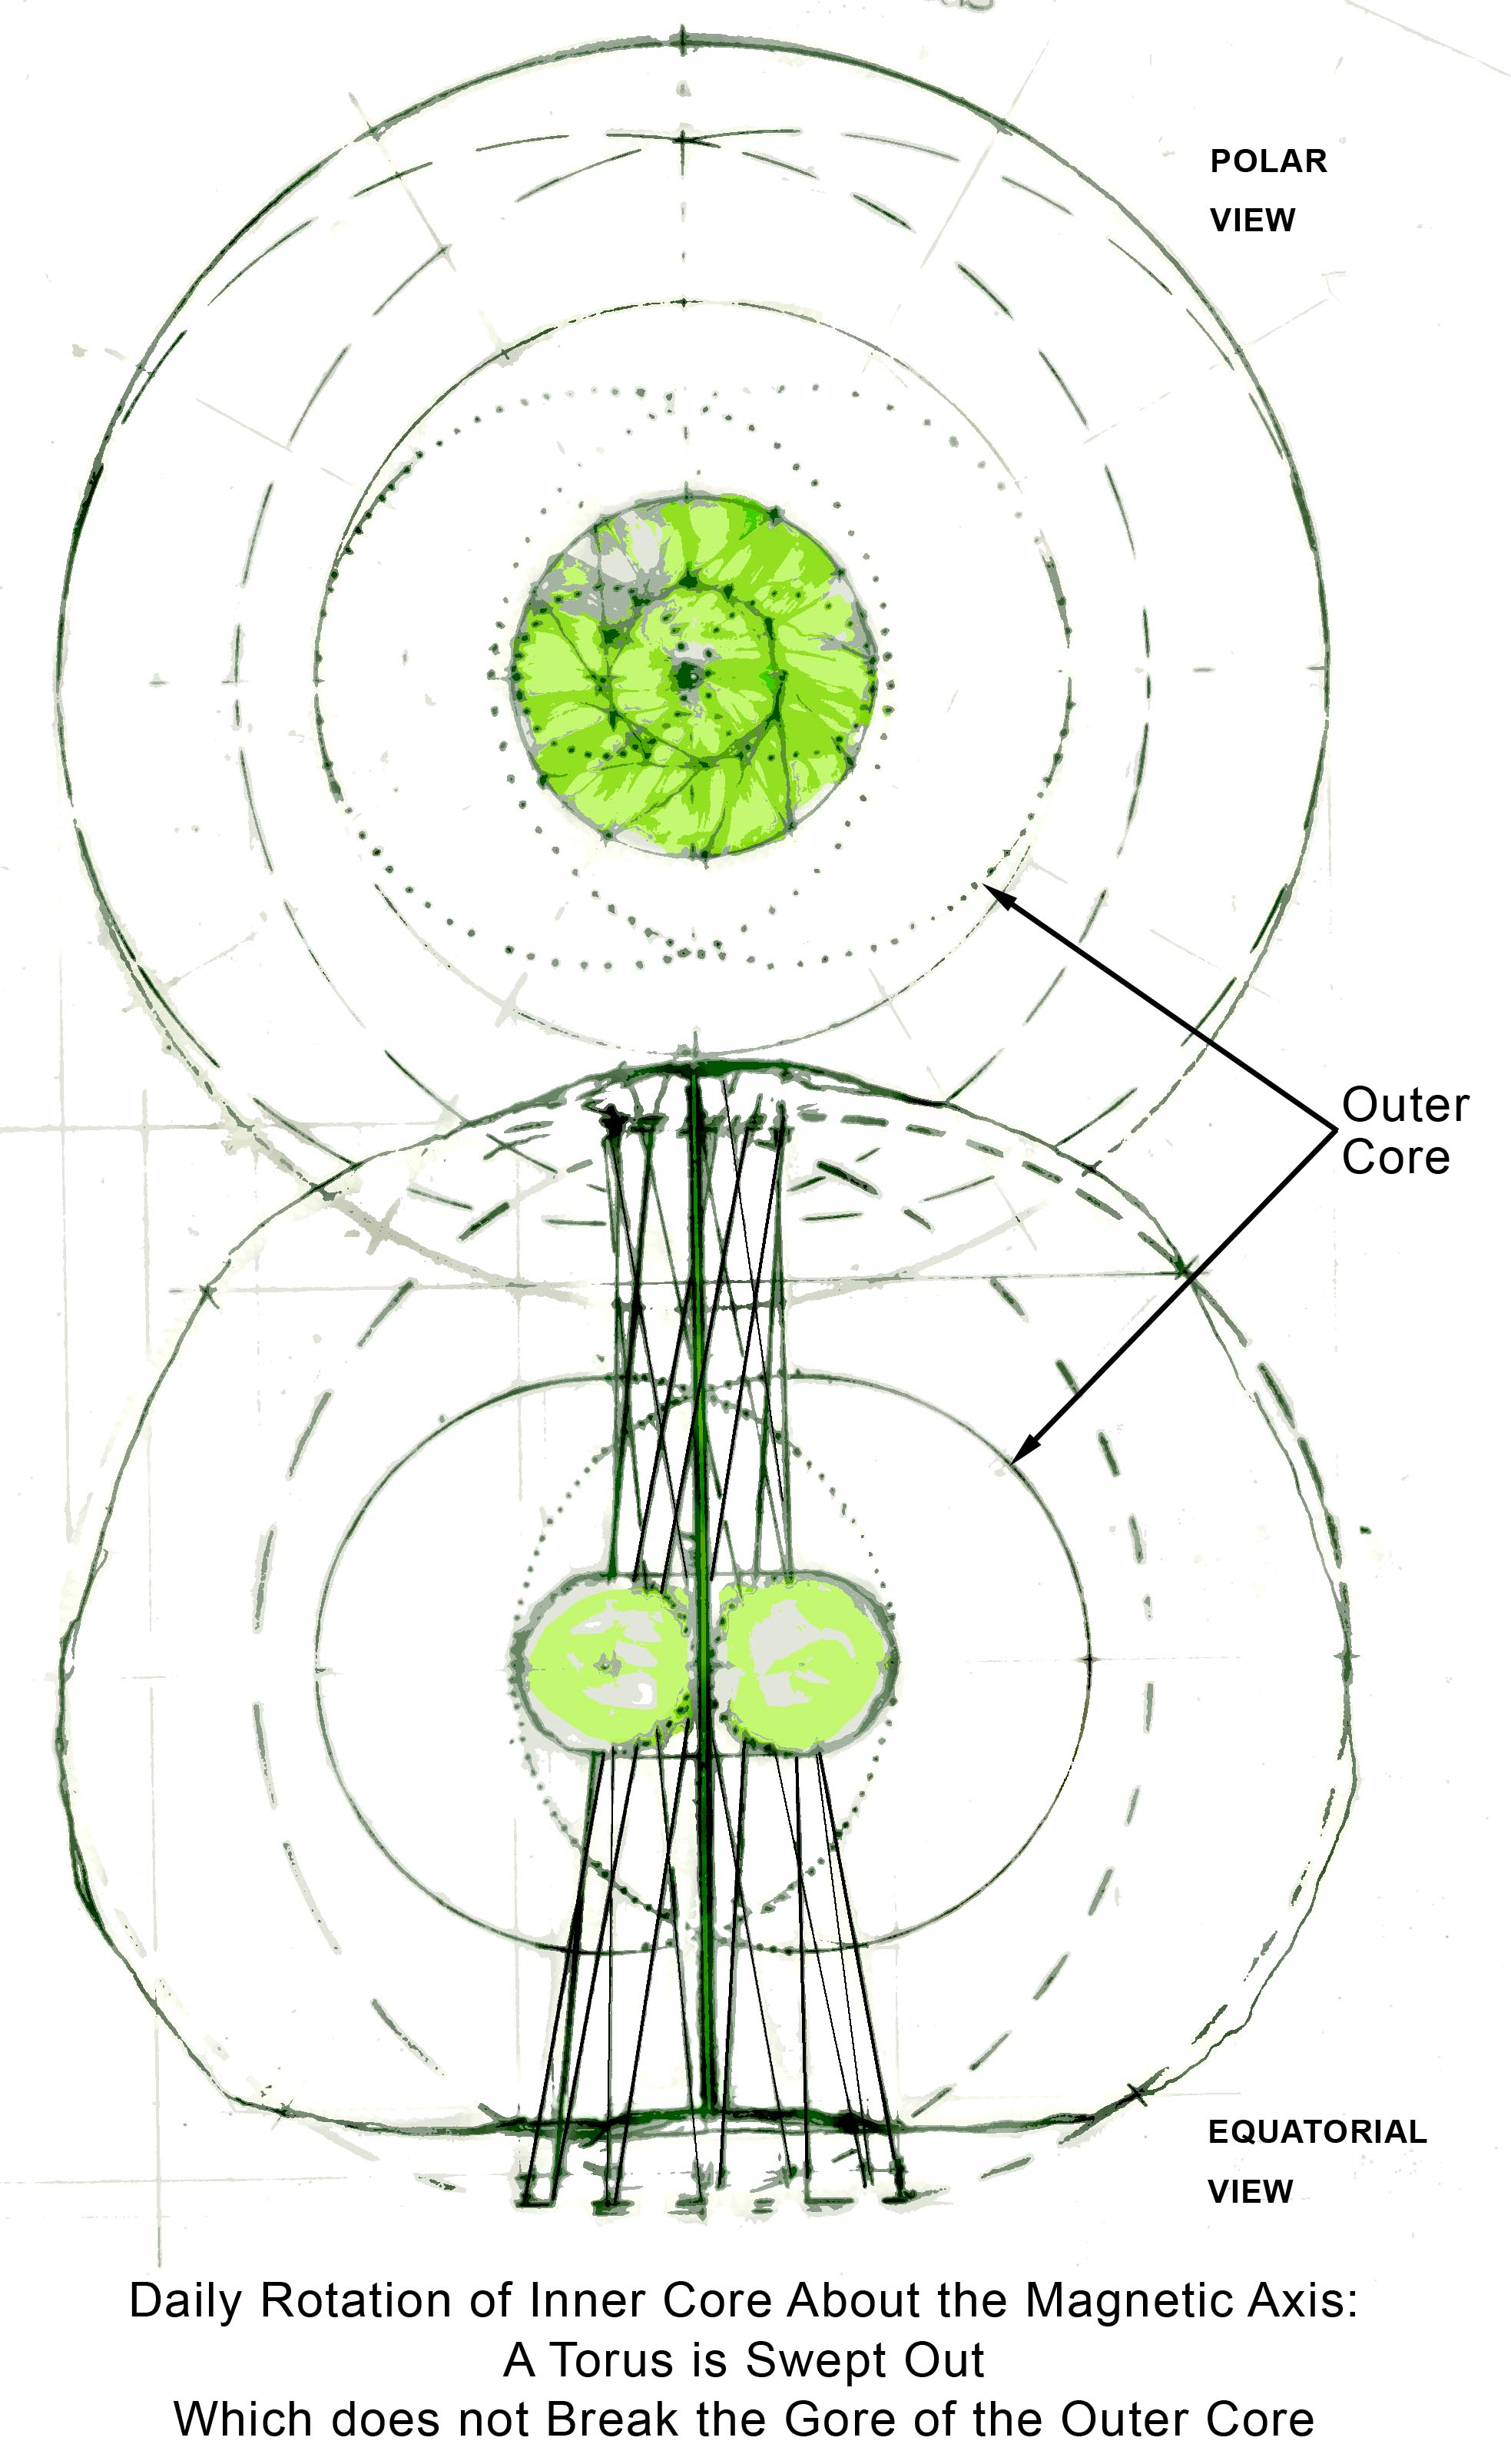 The Daily Torus of Earth's Inner Core